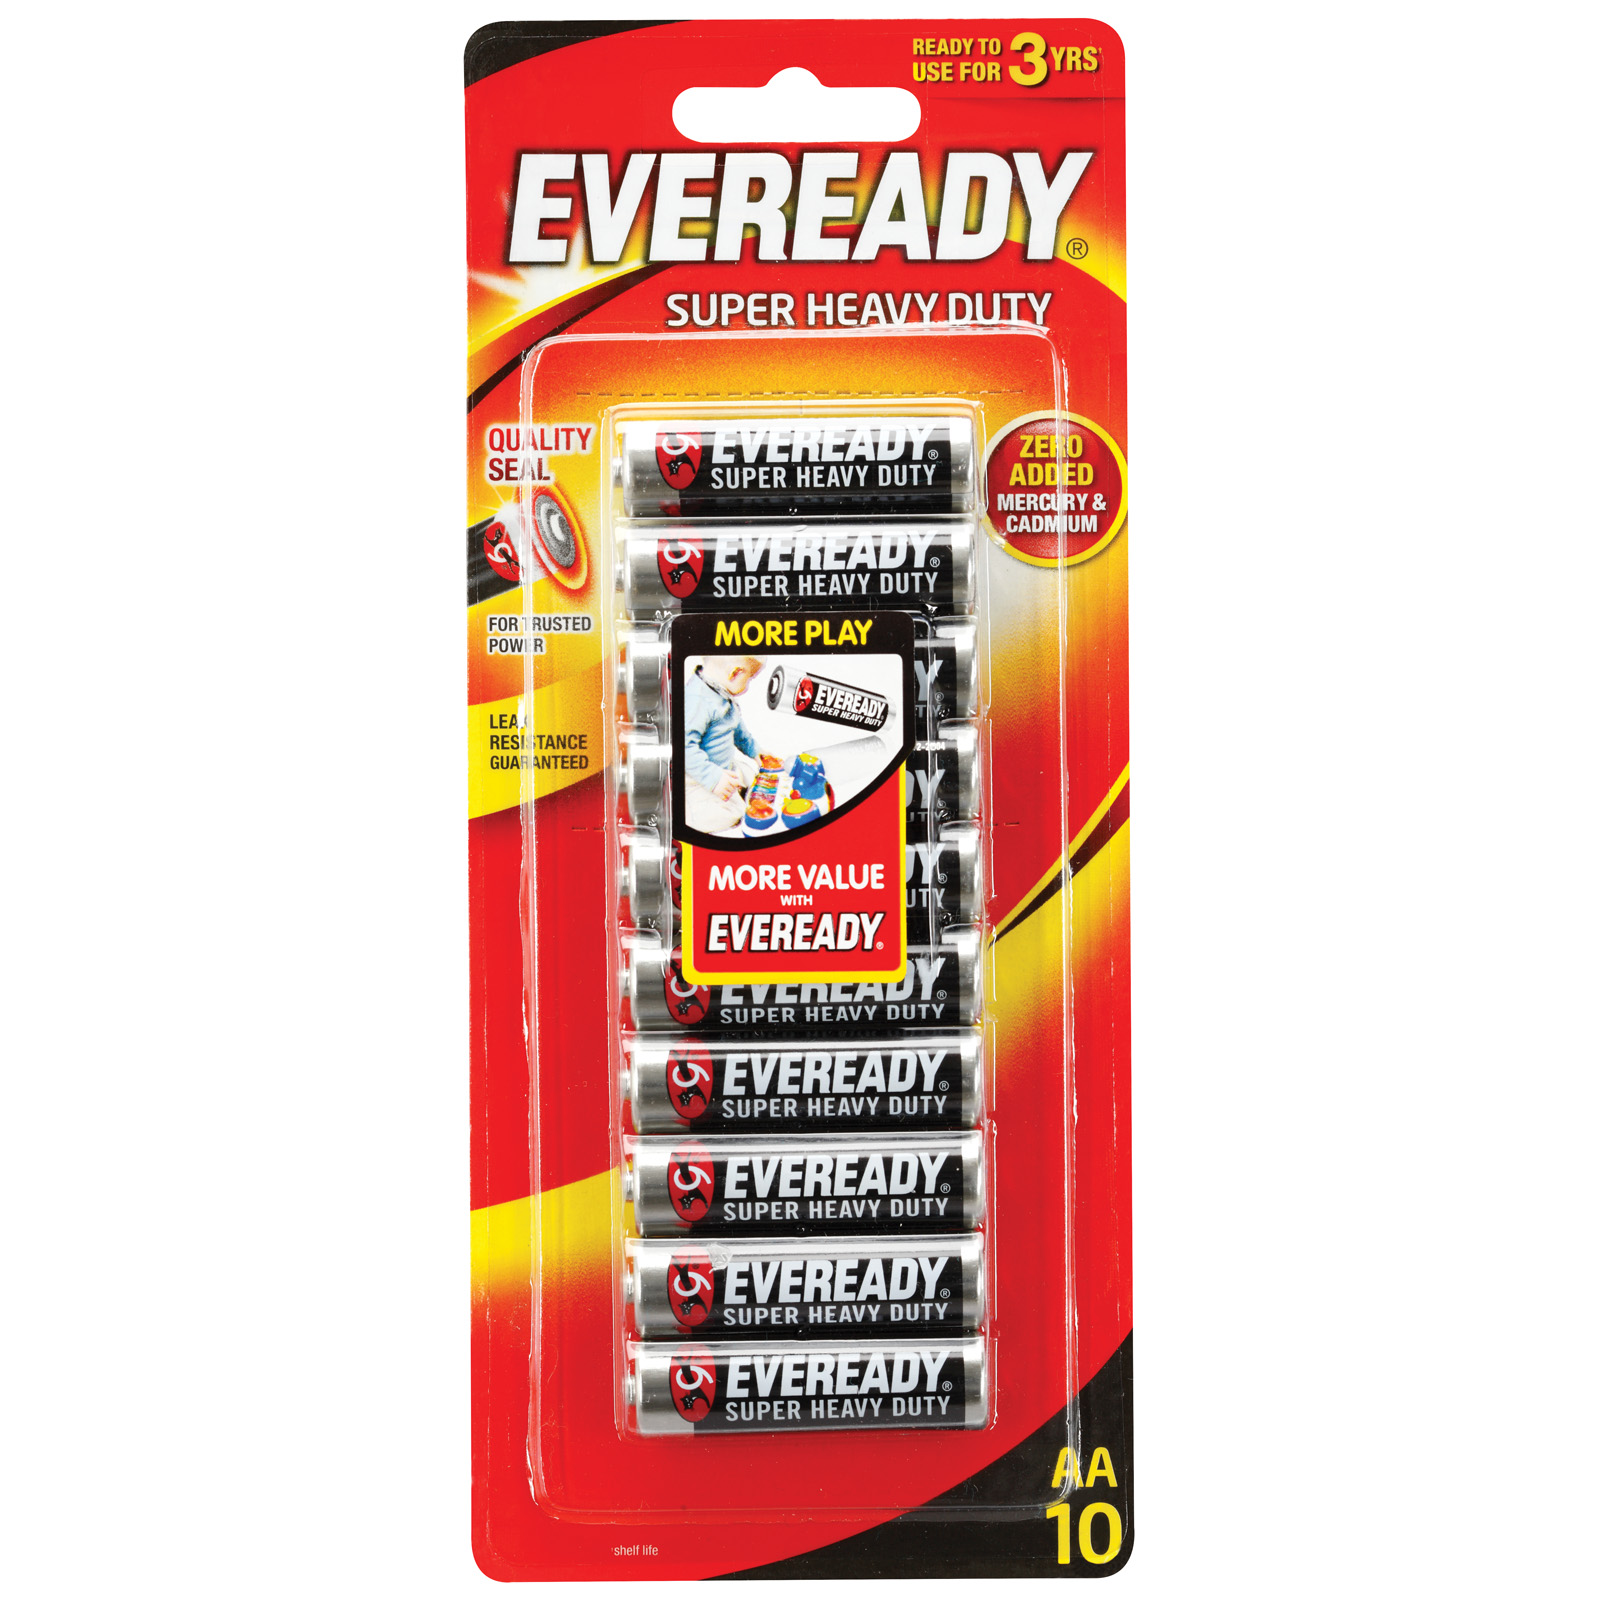 Eveready 1215 AA Carbon Zinc Battery (pkt/10pc)